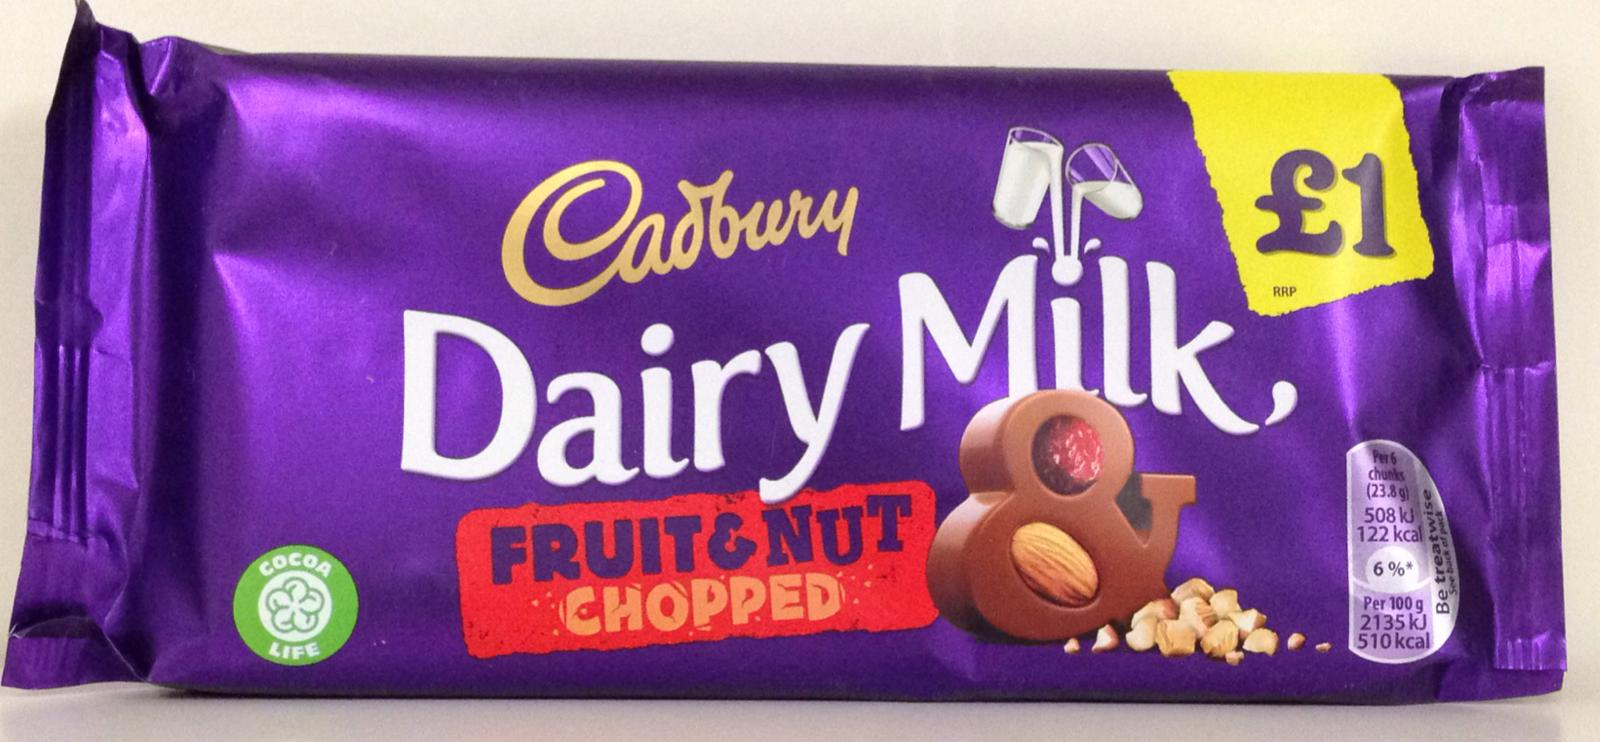 Cadbury Fruit & nut 95g